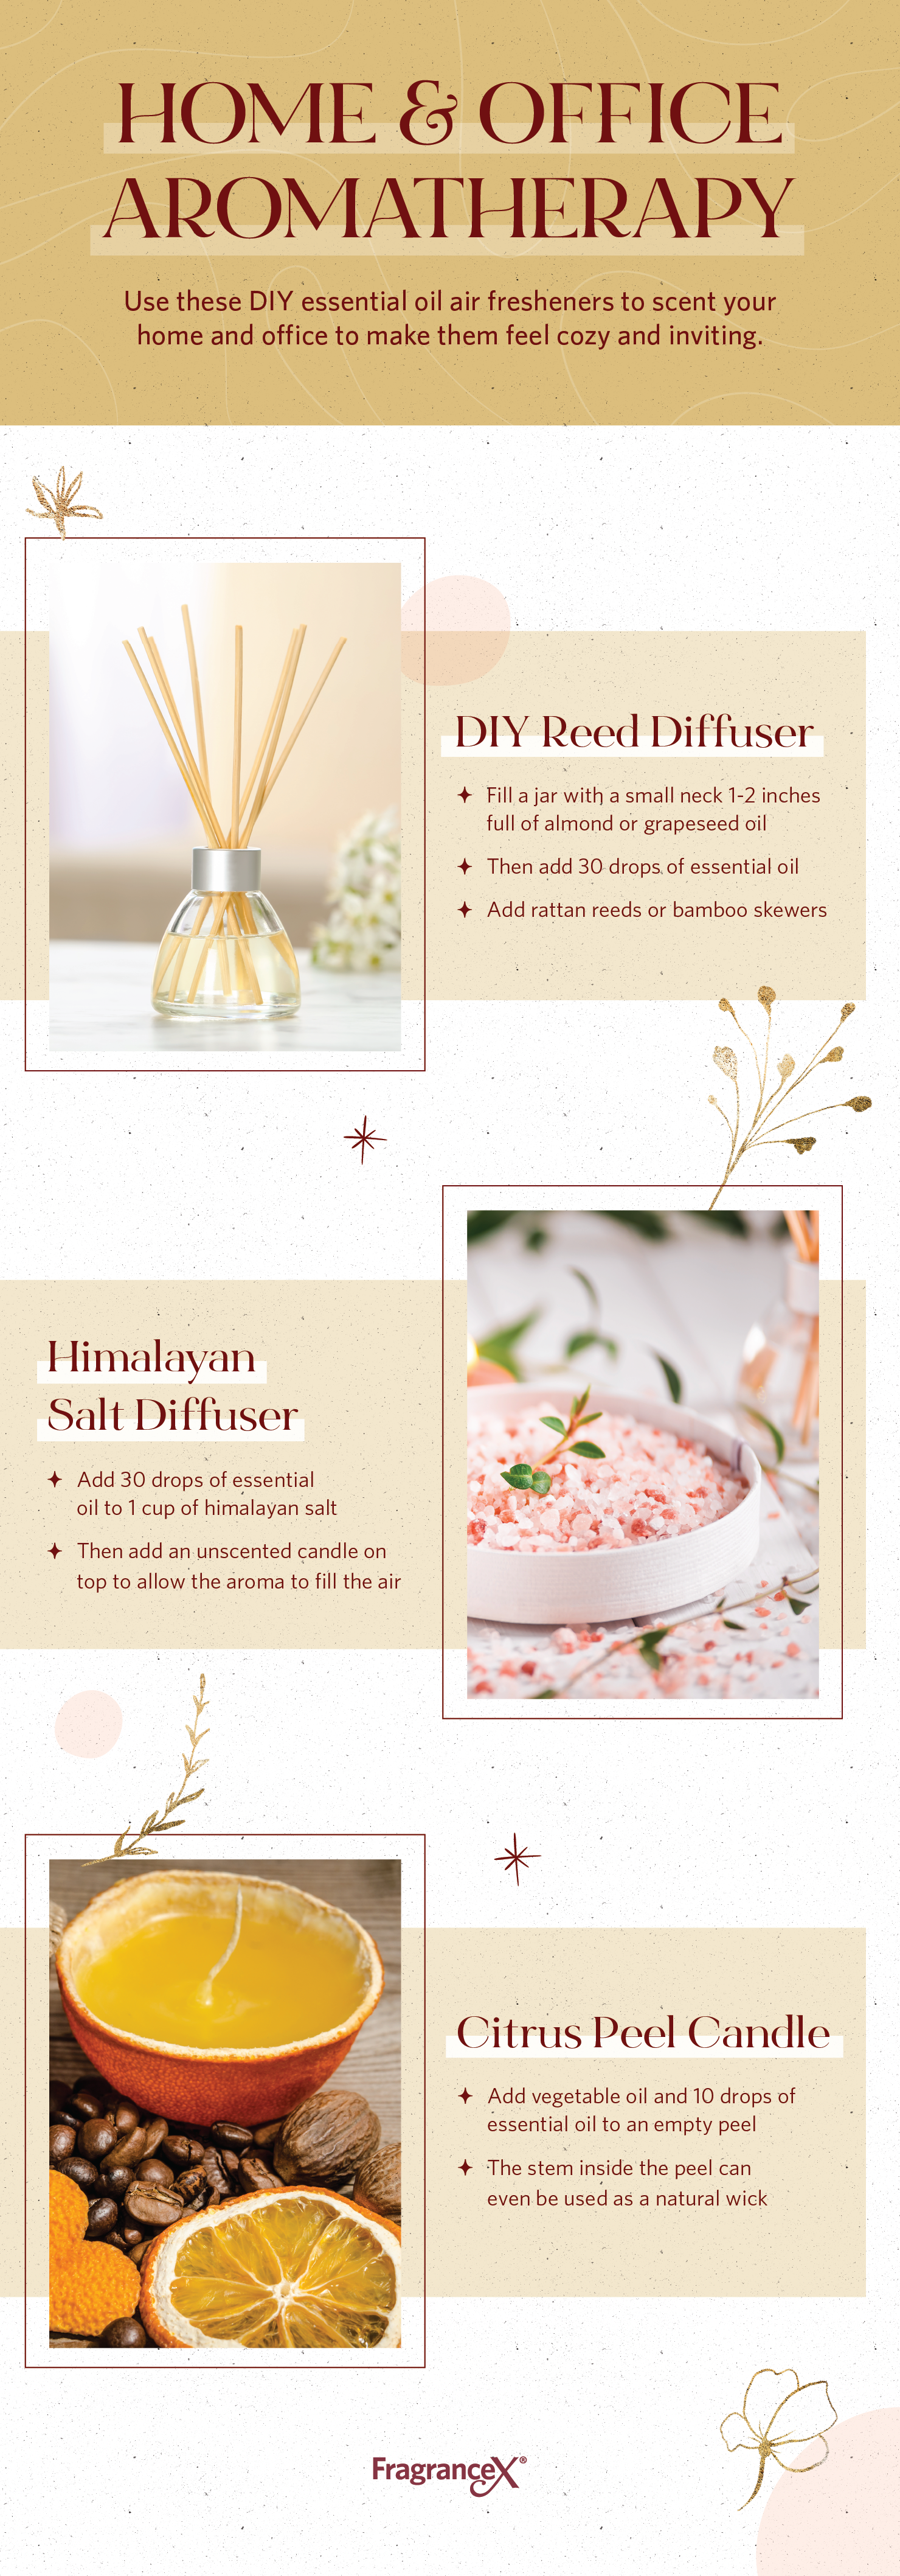 Use these DIY essential oil air freshener recipes to make your home and office feel cozy and inviting